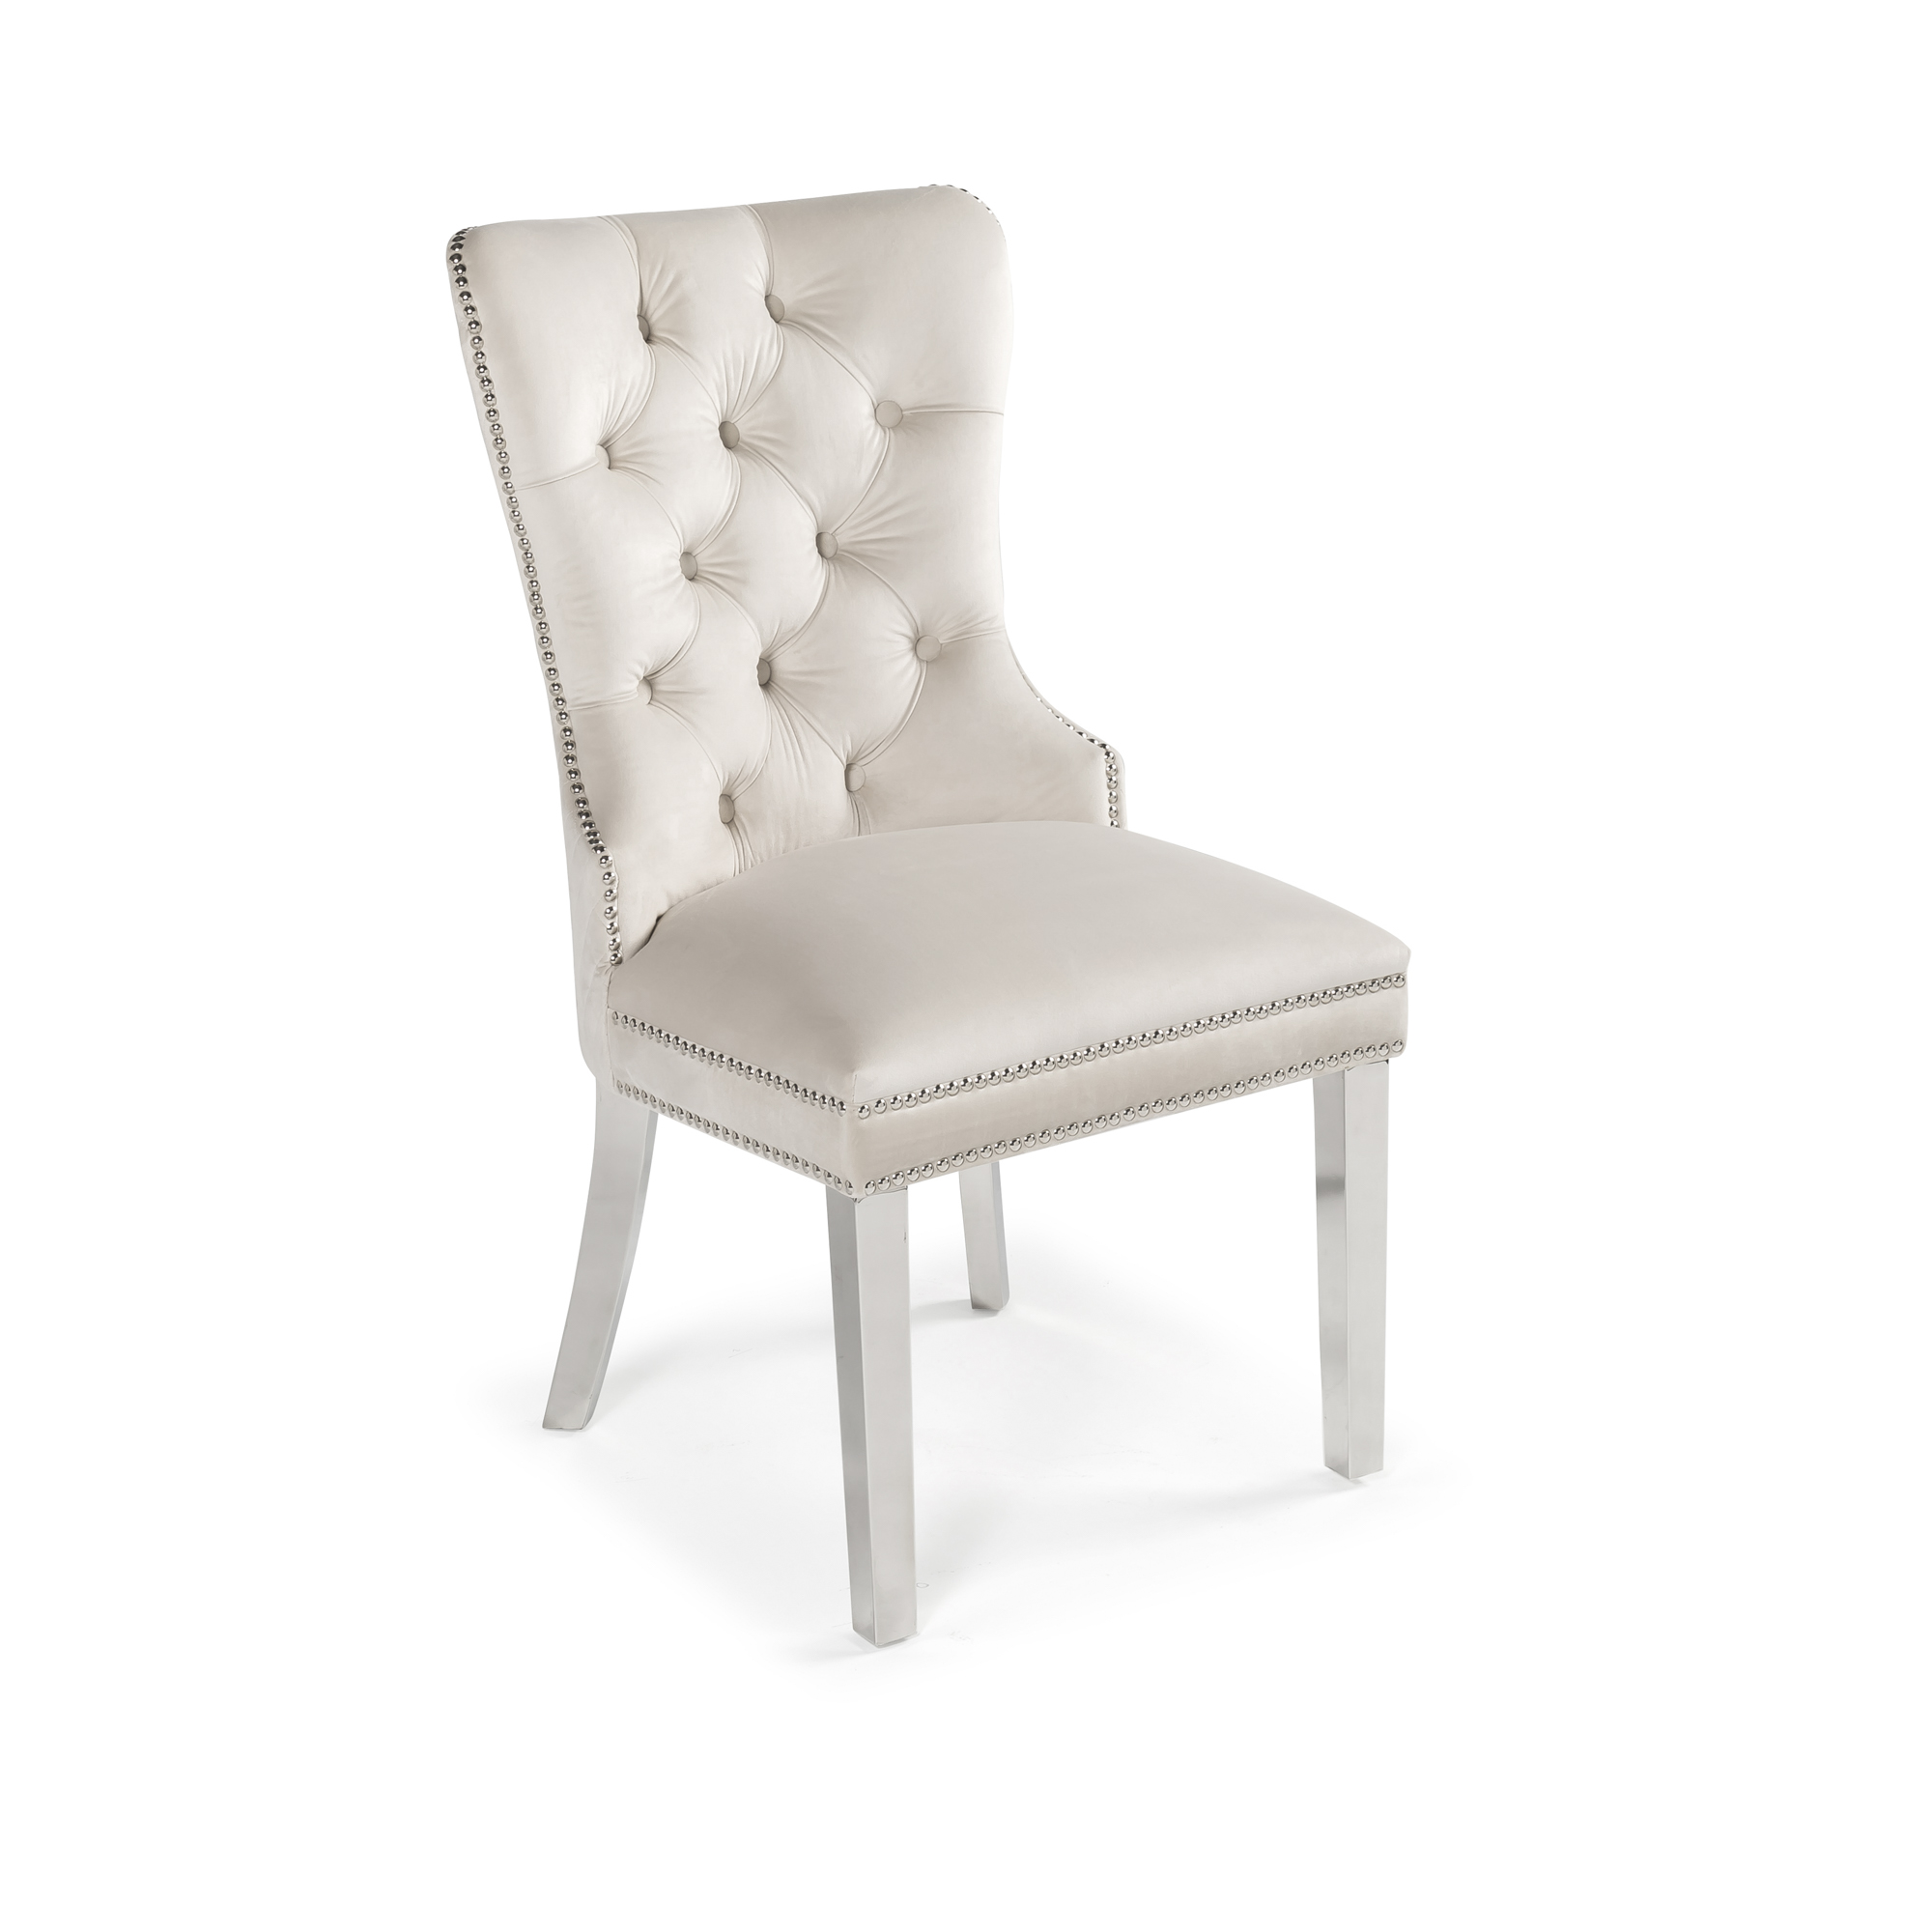 Hale Quilted Cream Brushed Velvet Dining Chair with Knocker Handle